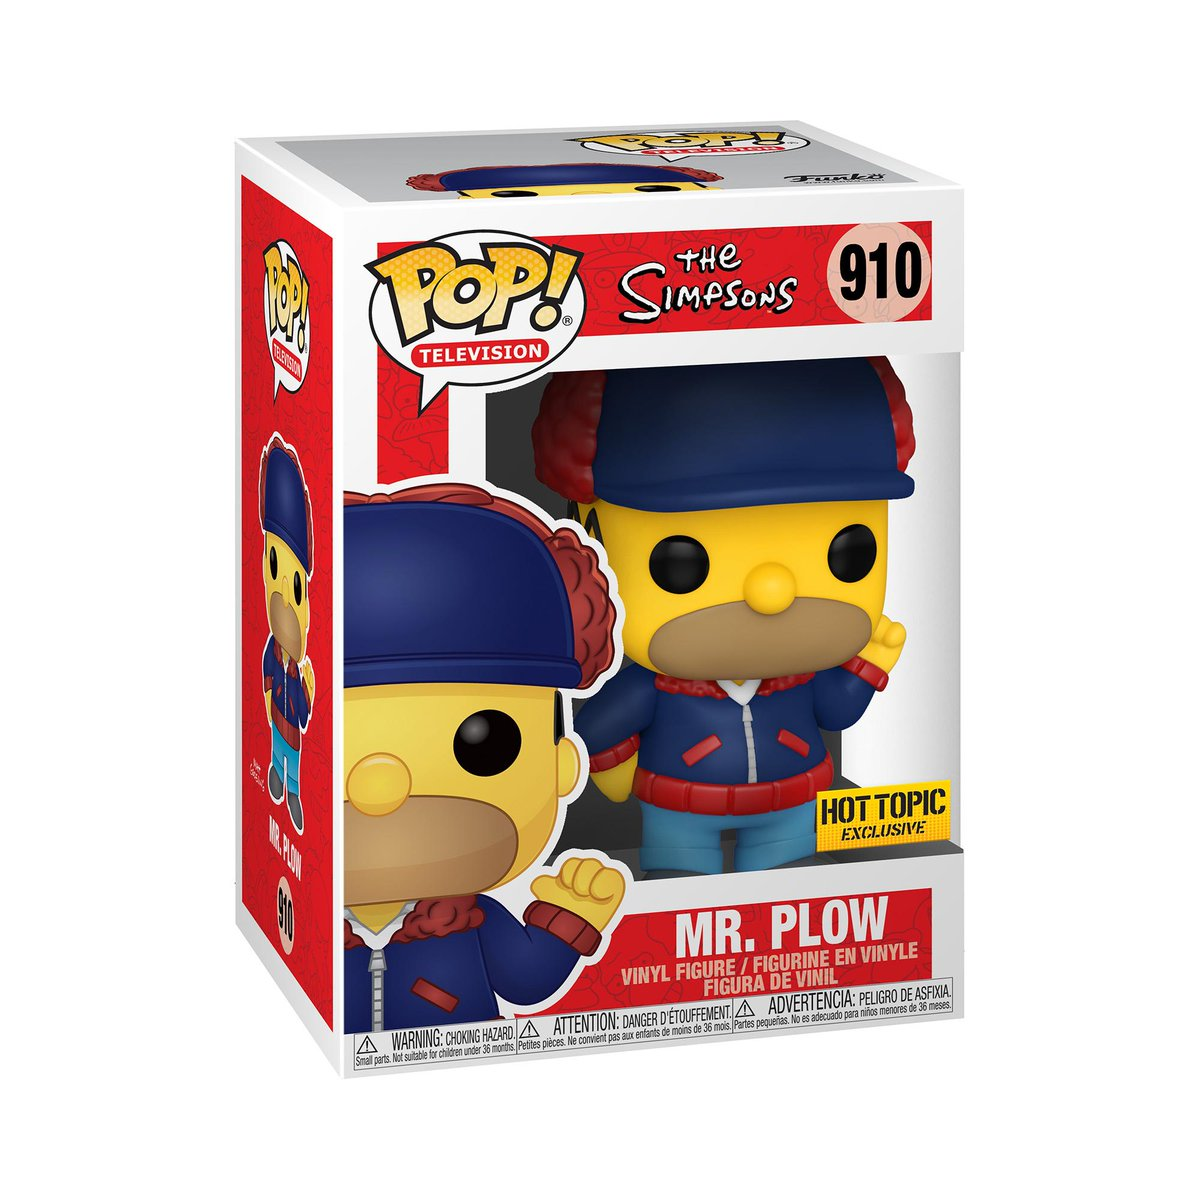 RT & follow @OriginalFunko for the chance to WIN this @HotTopic exclusive Mr. Plow Pop!  #Funko #Funkogiveaway #giveaway #thesimpsons